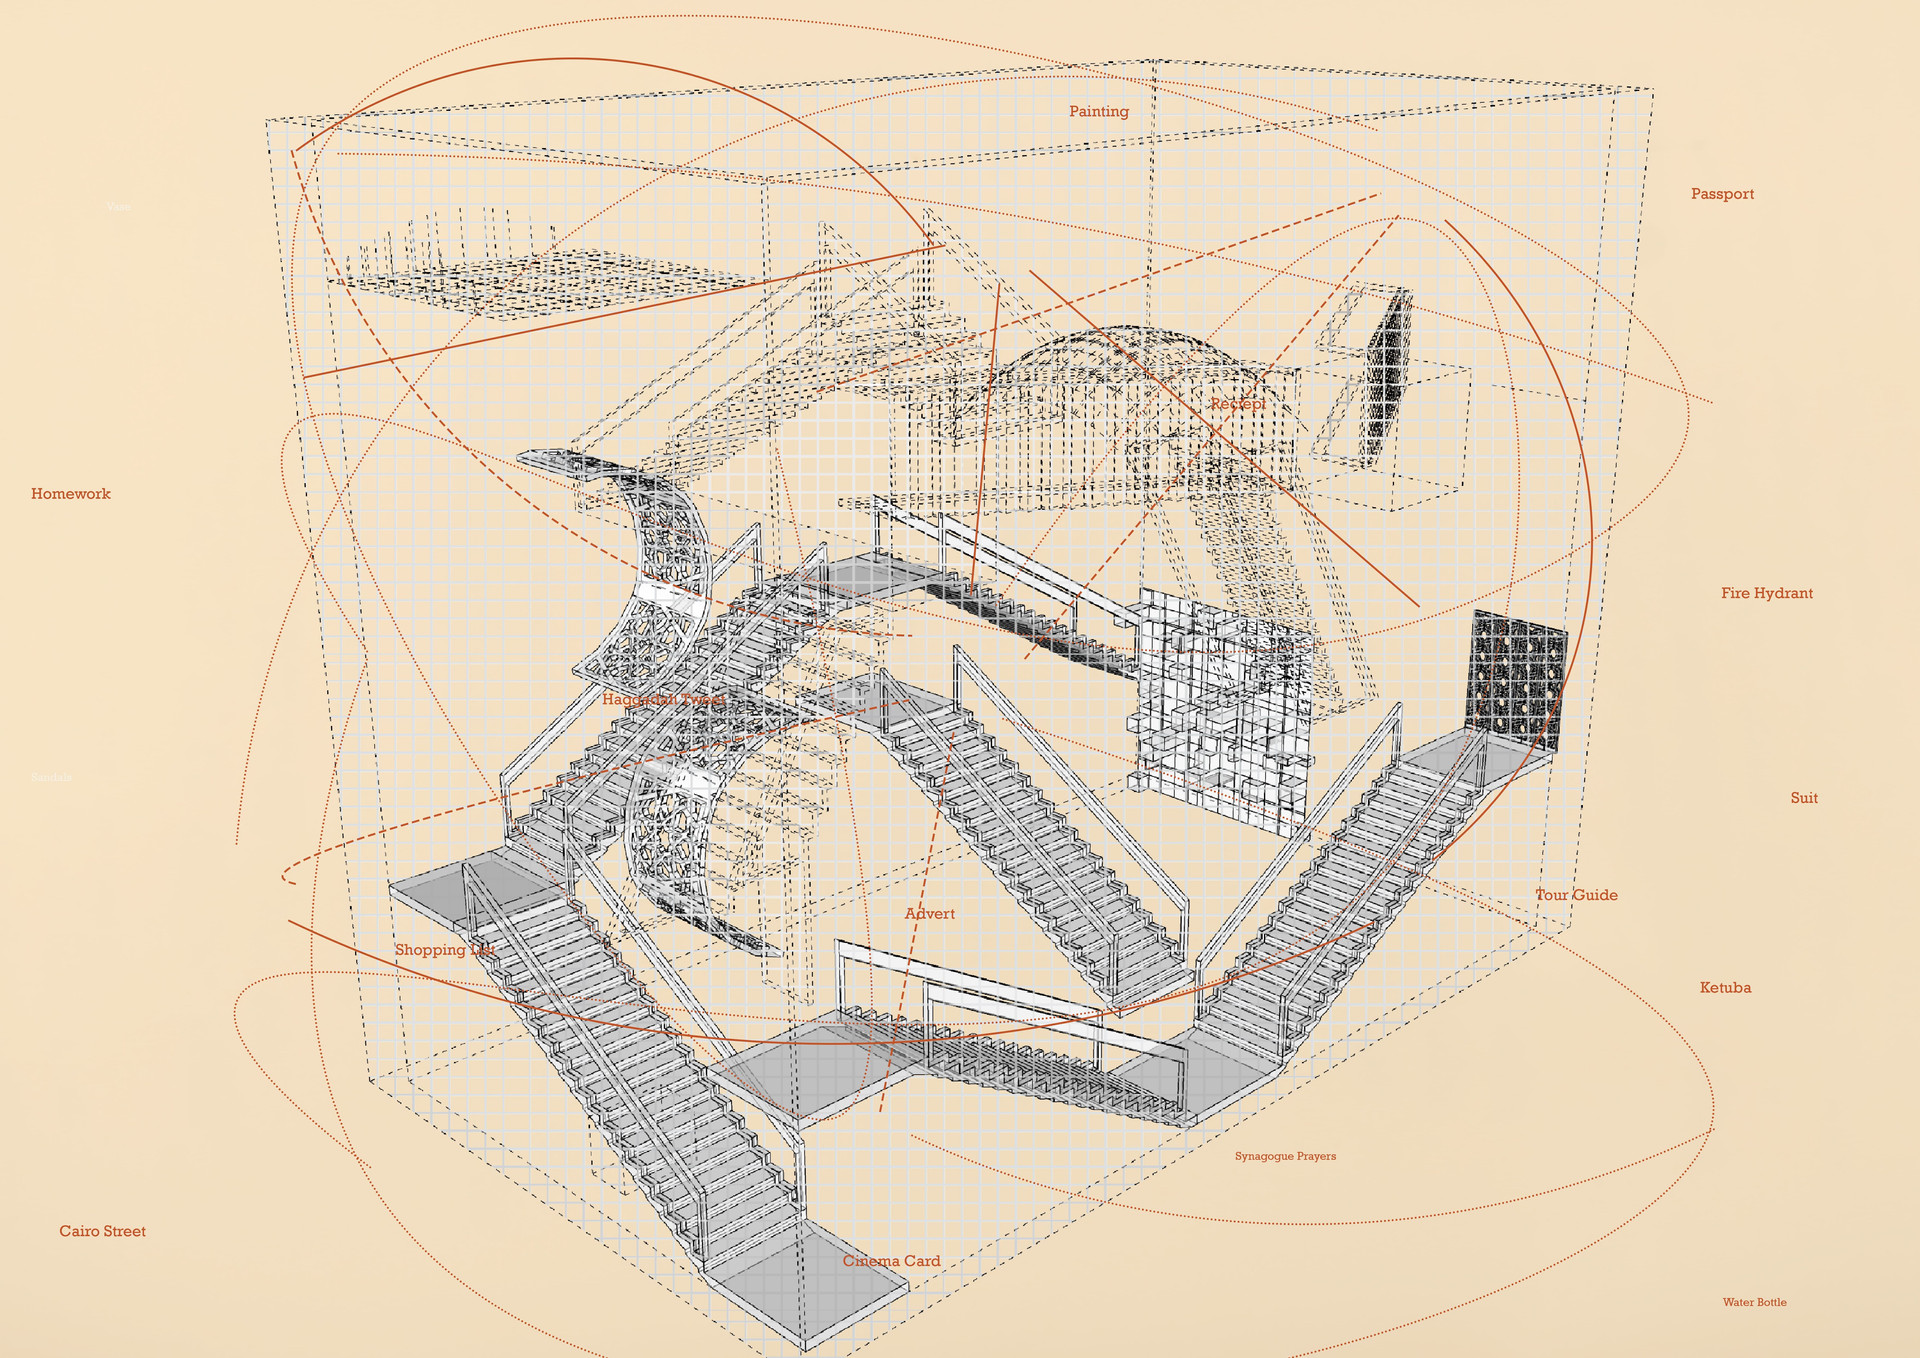 Archive of the Everyday: Museum Map. Abrams, G. Unit 18. 2020.